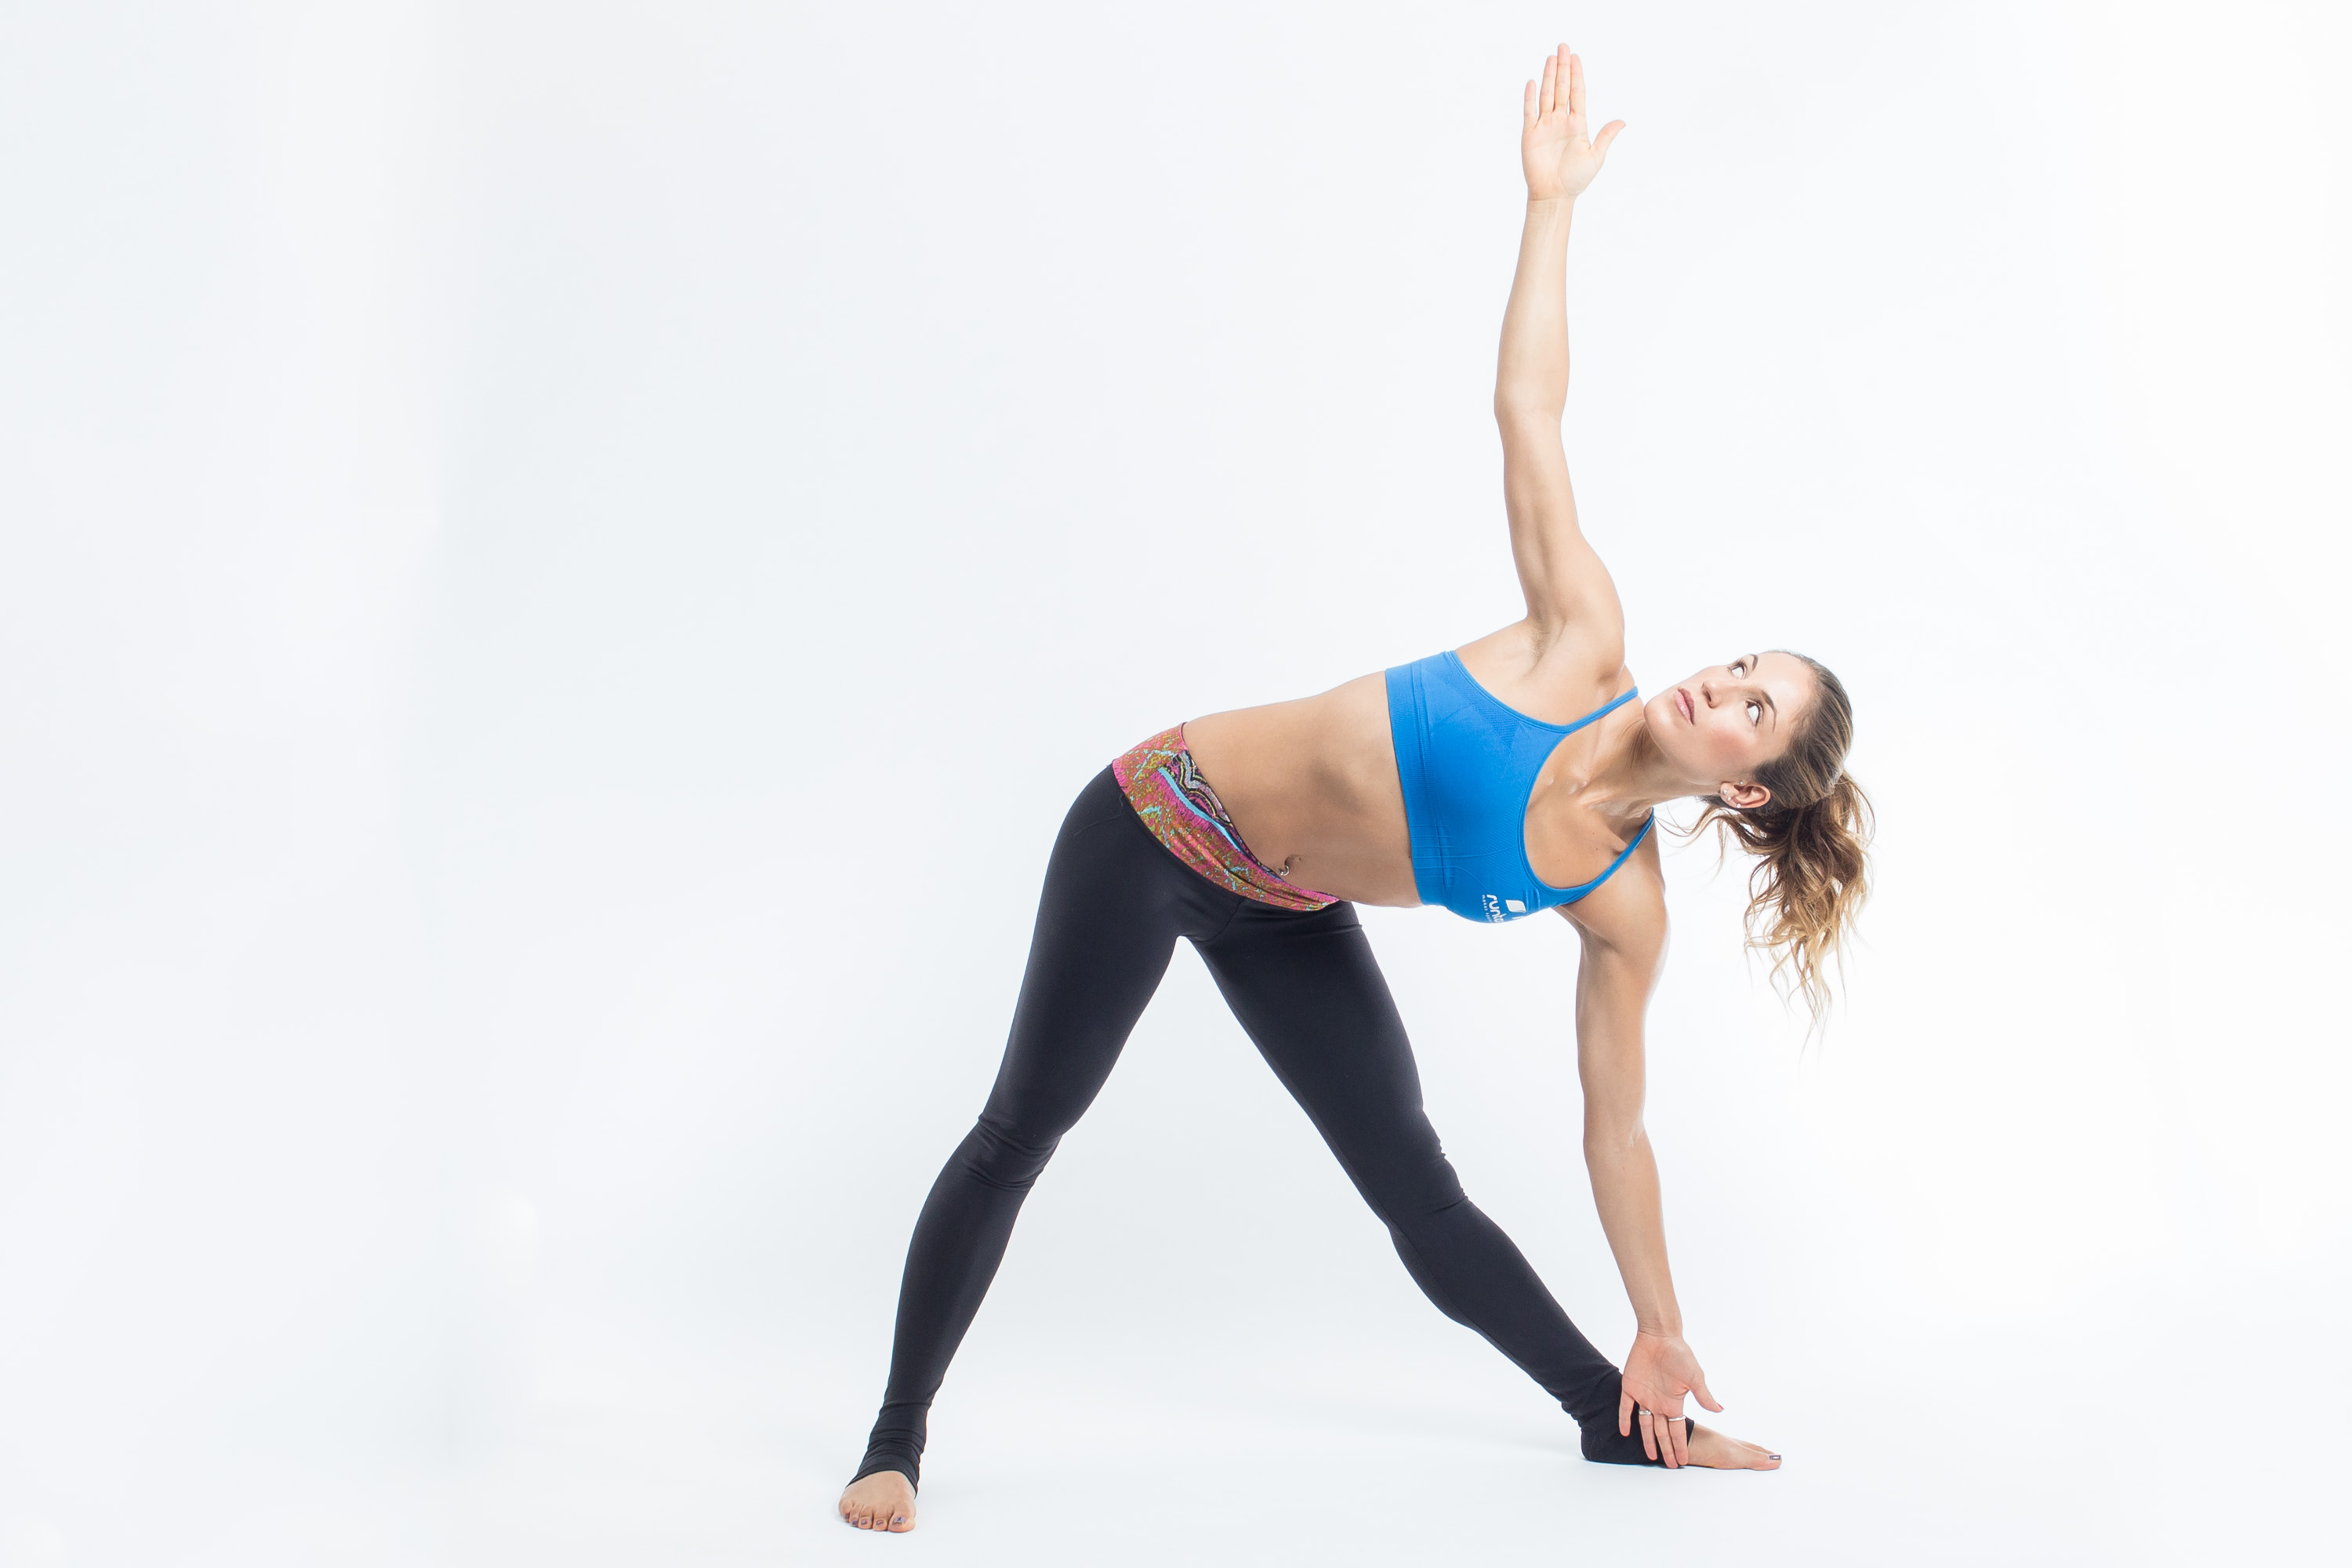 Yoga Poses for Runners - Triangle Pose